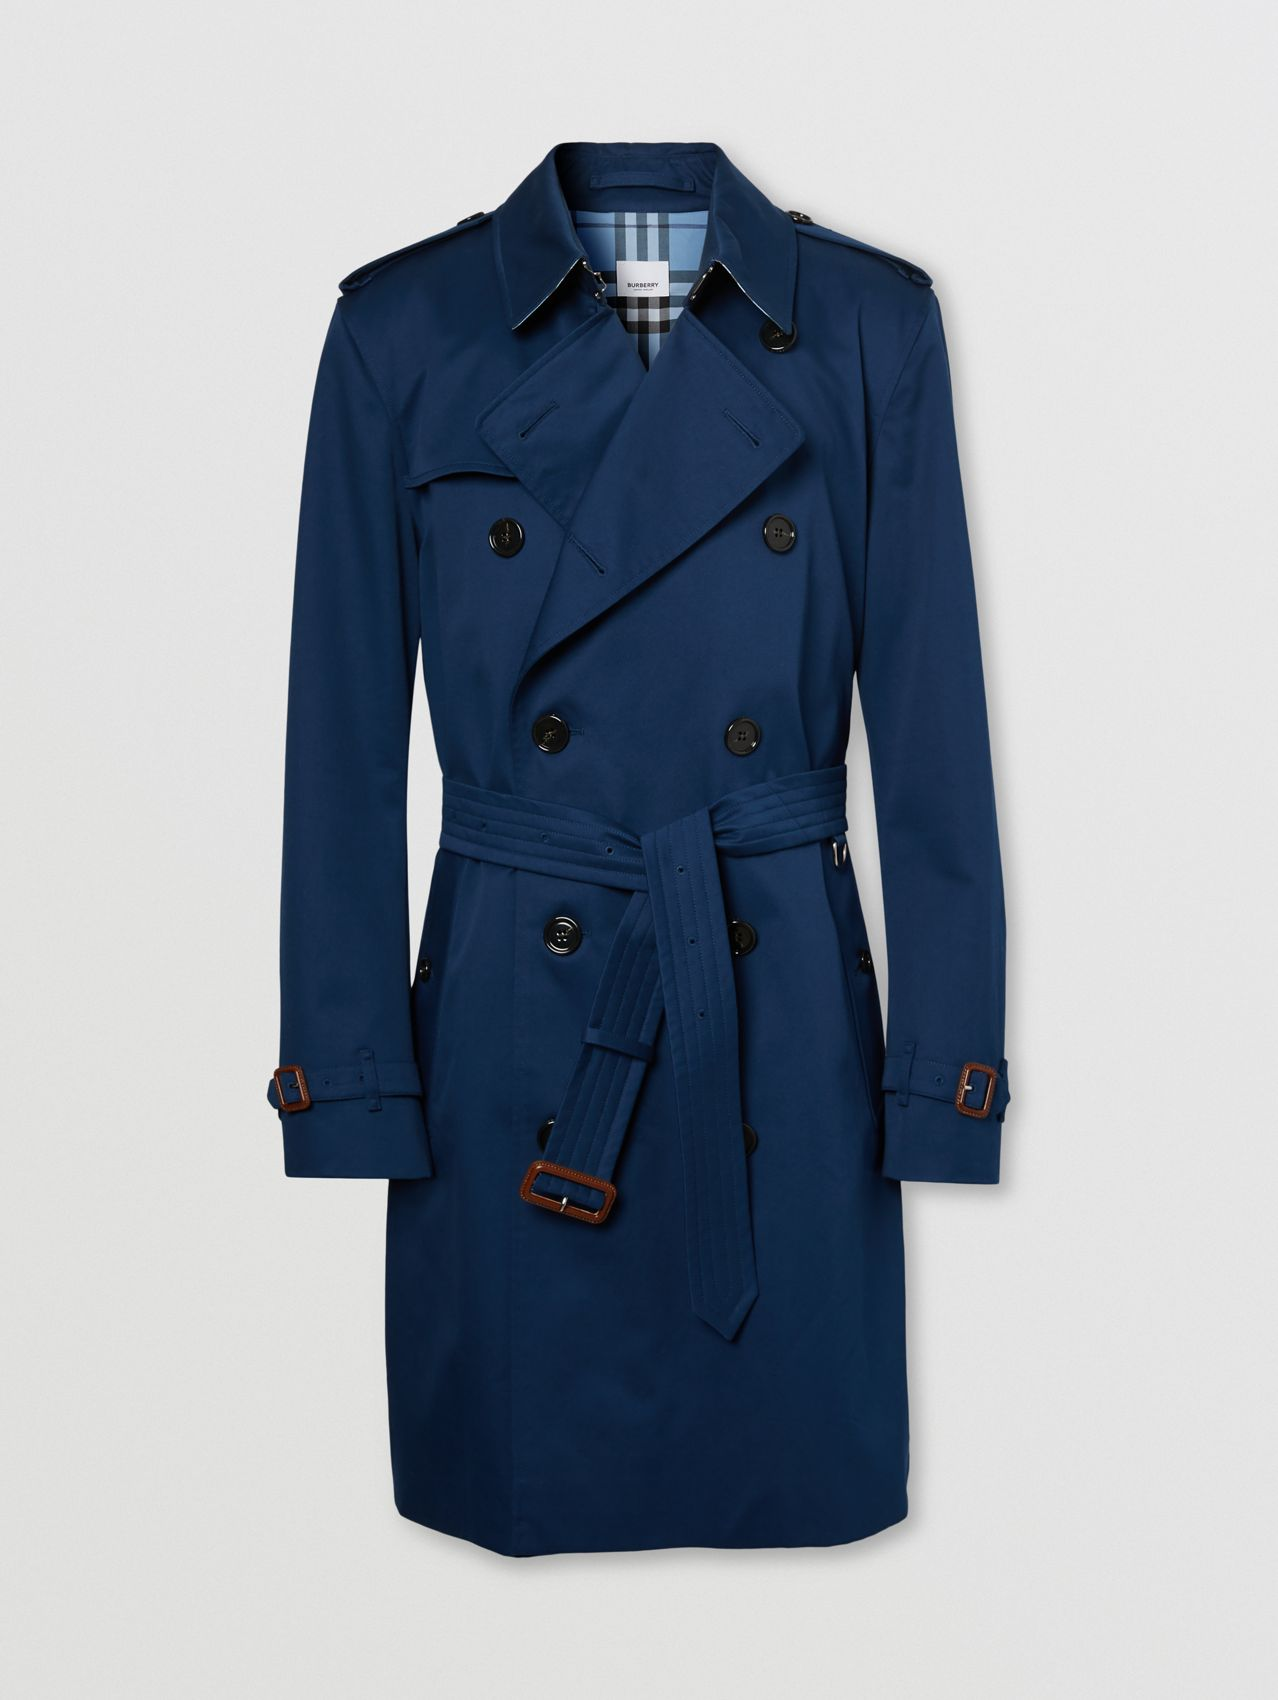 Trench coat Kensington de longitud media (Azul Tinta)